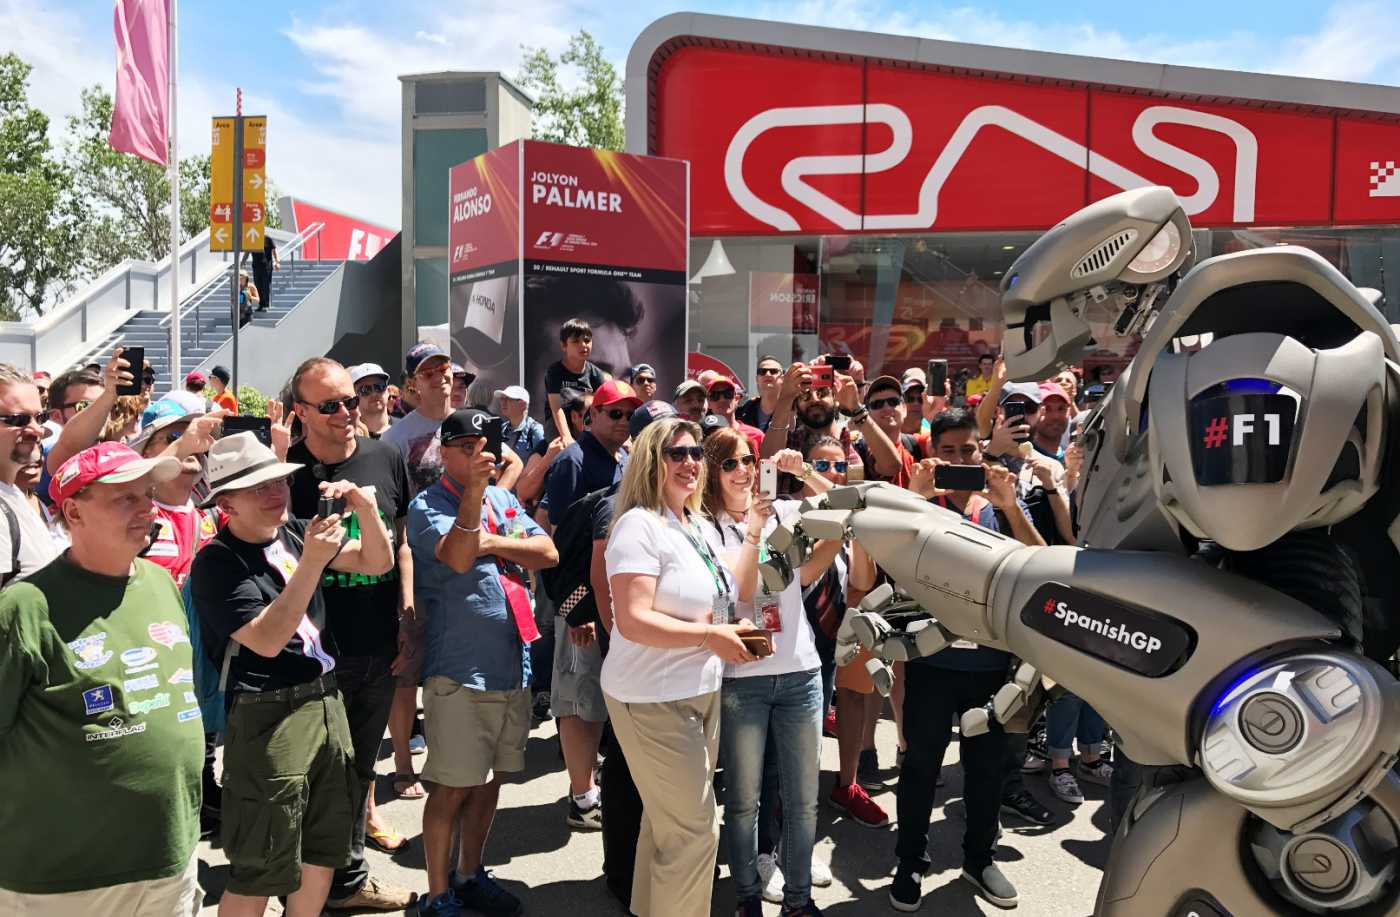 Winning formula: Titan the Robot takes the fun up a gear at F1 Spanish Grand Prix